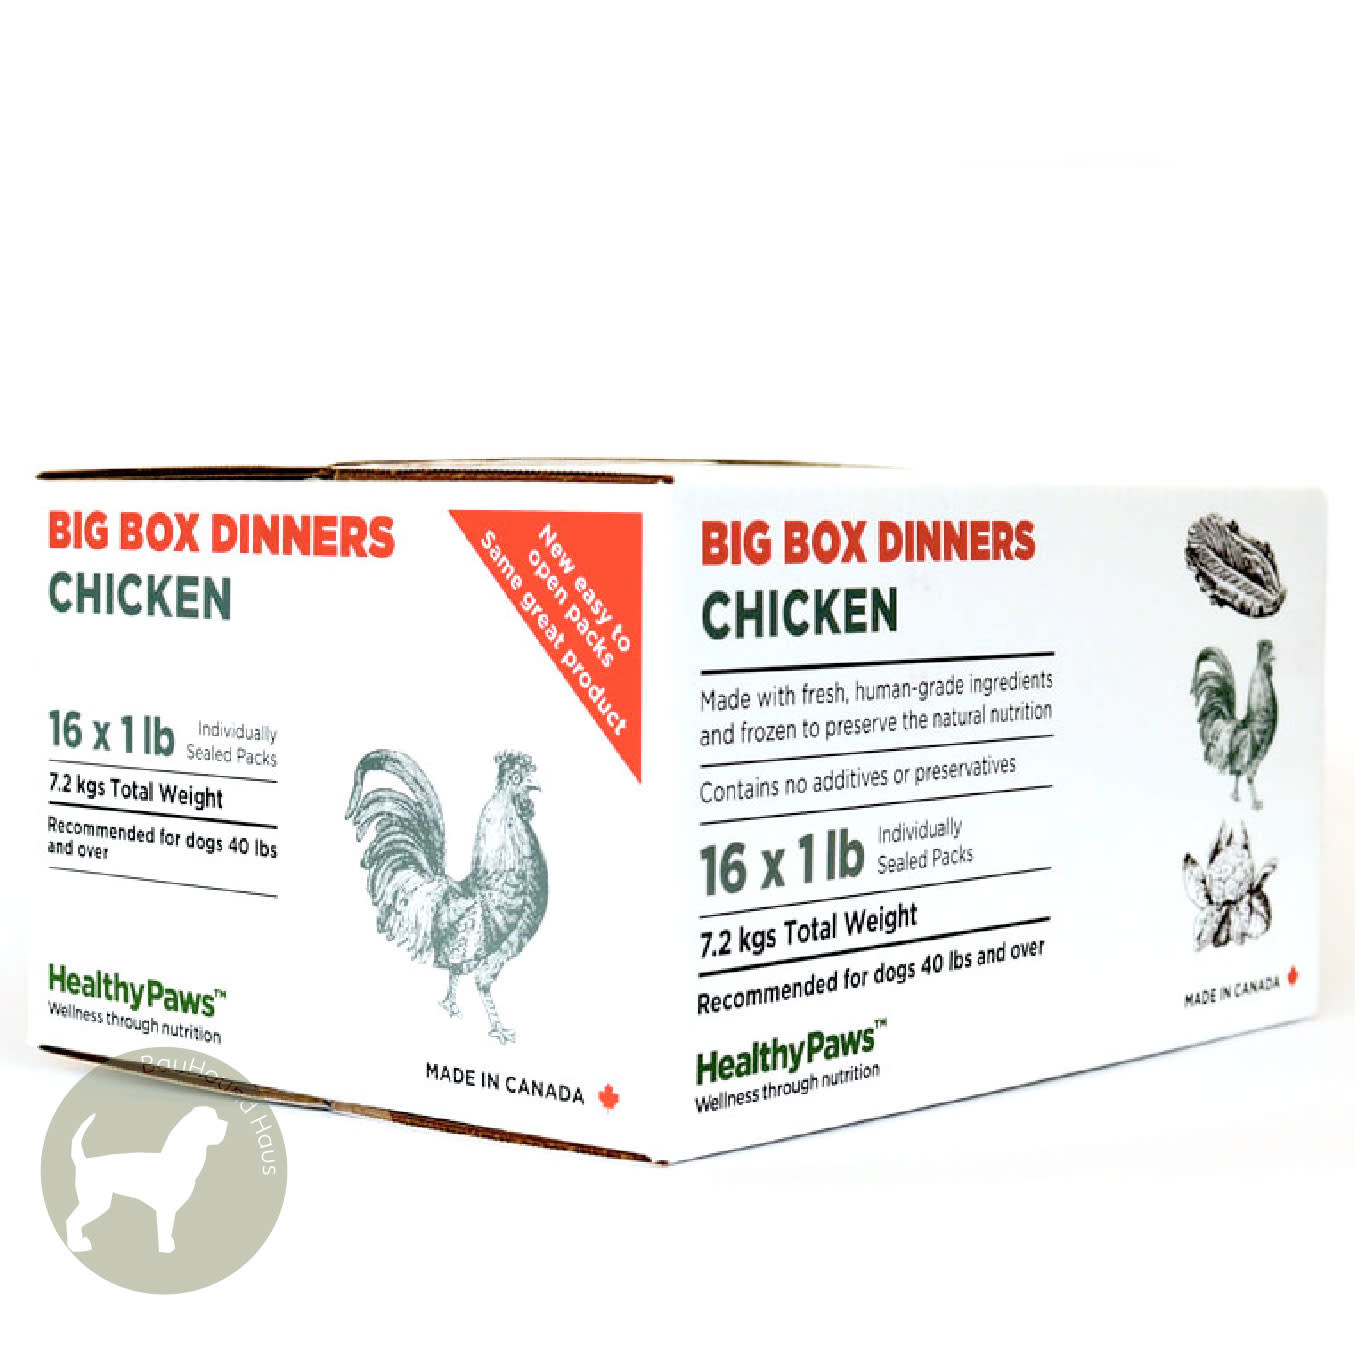 Healthy Paws Healthy Paws Big Box Dinner Chicken, 16lb